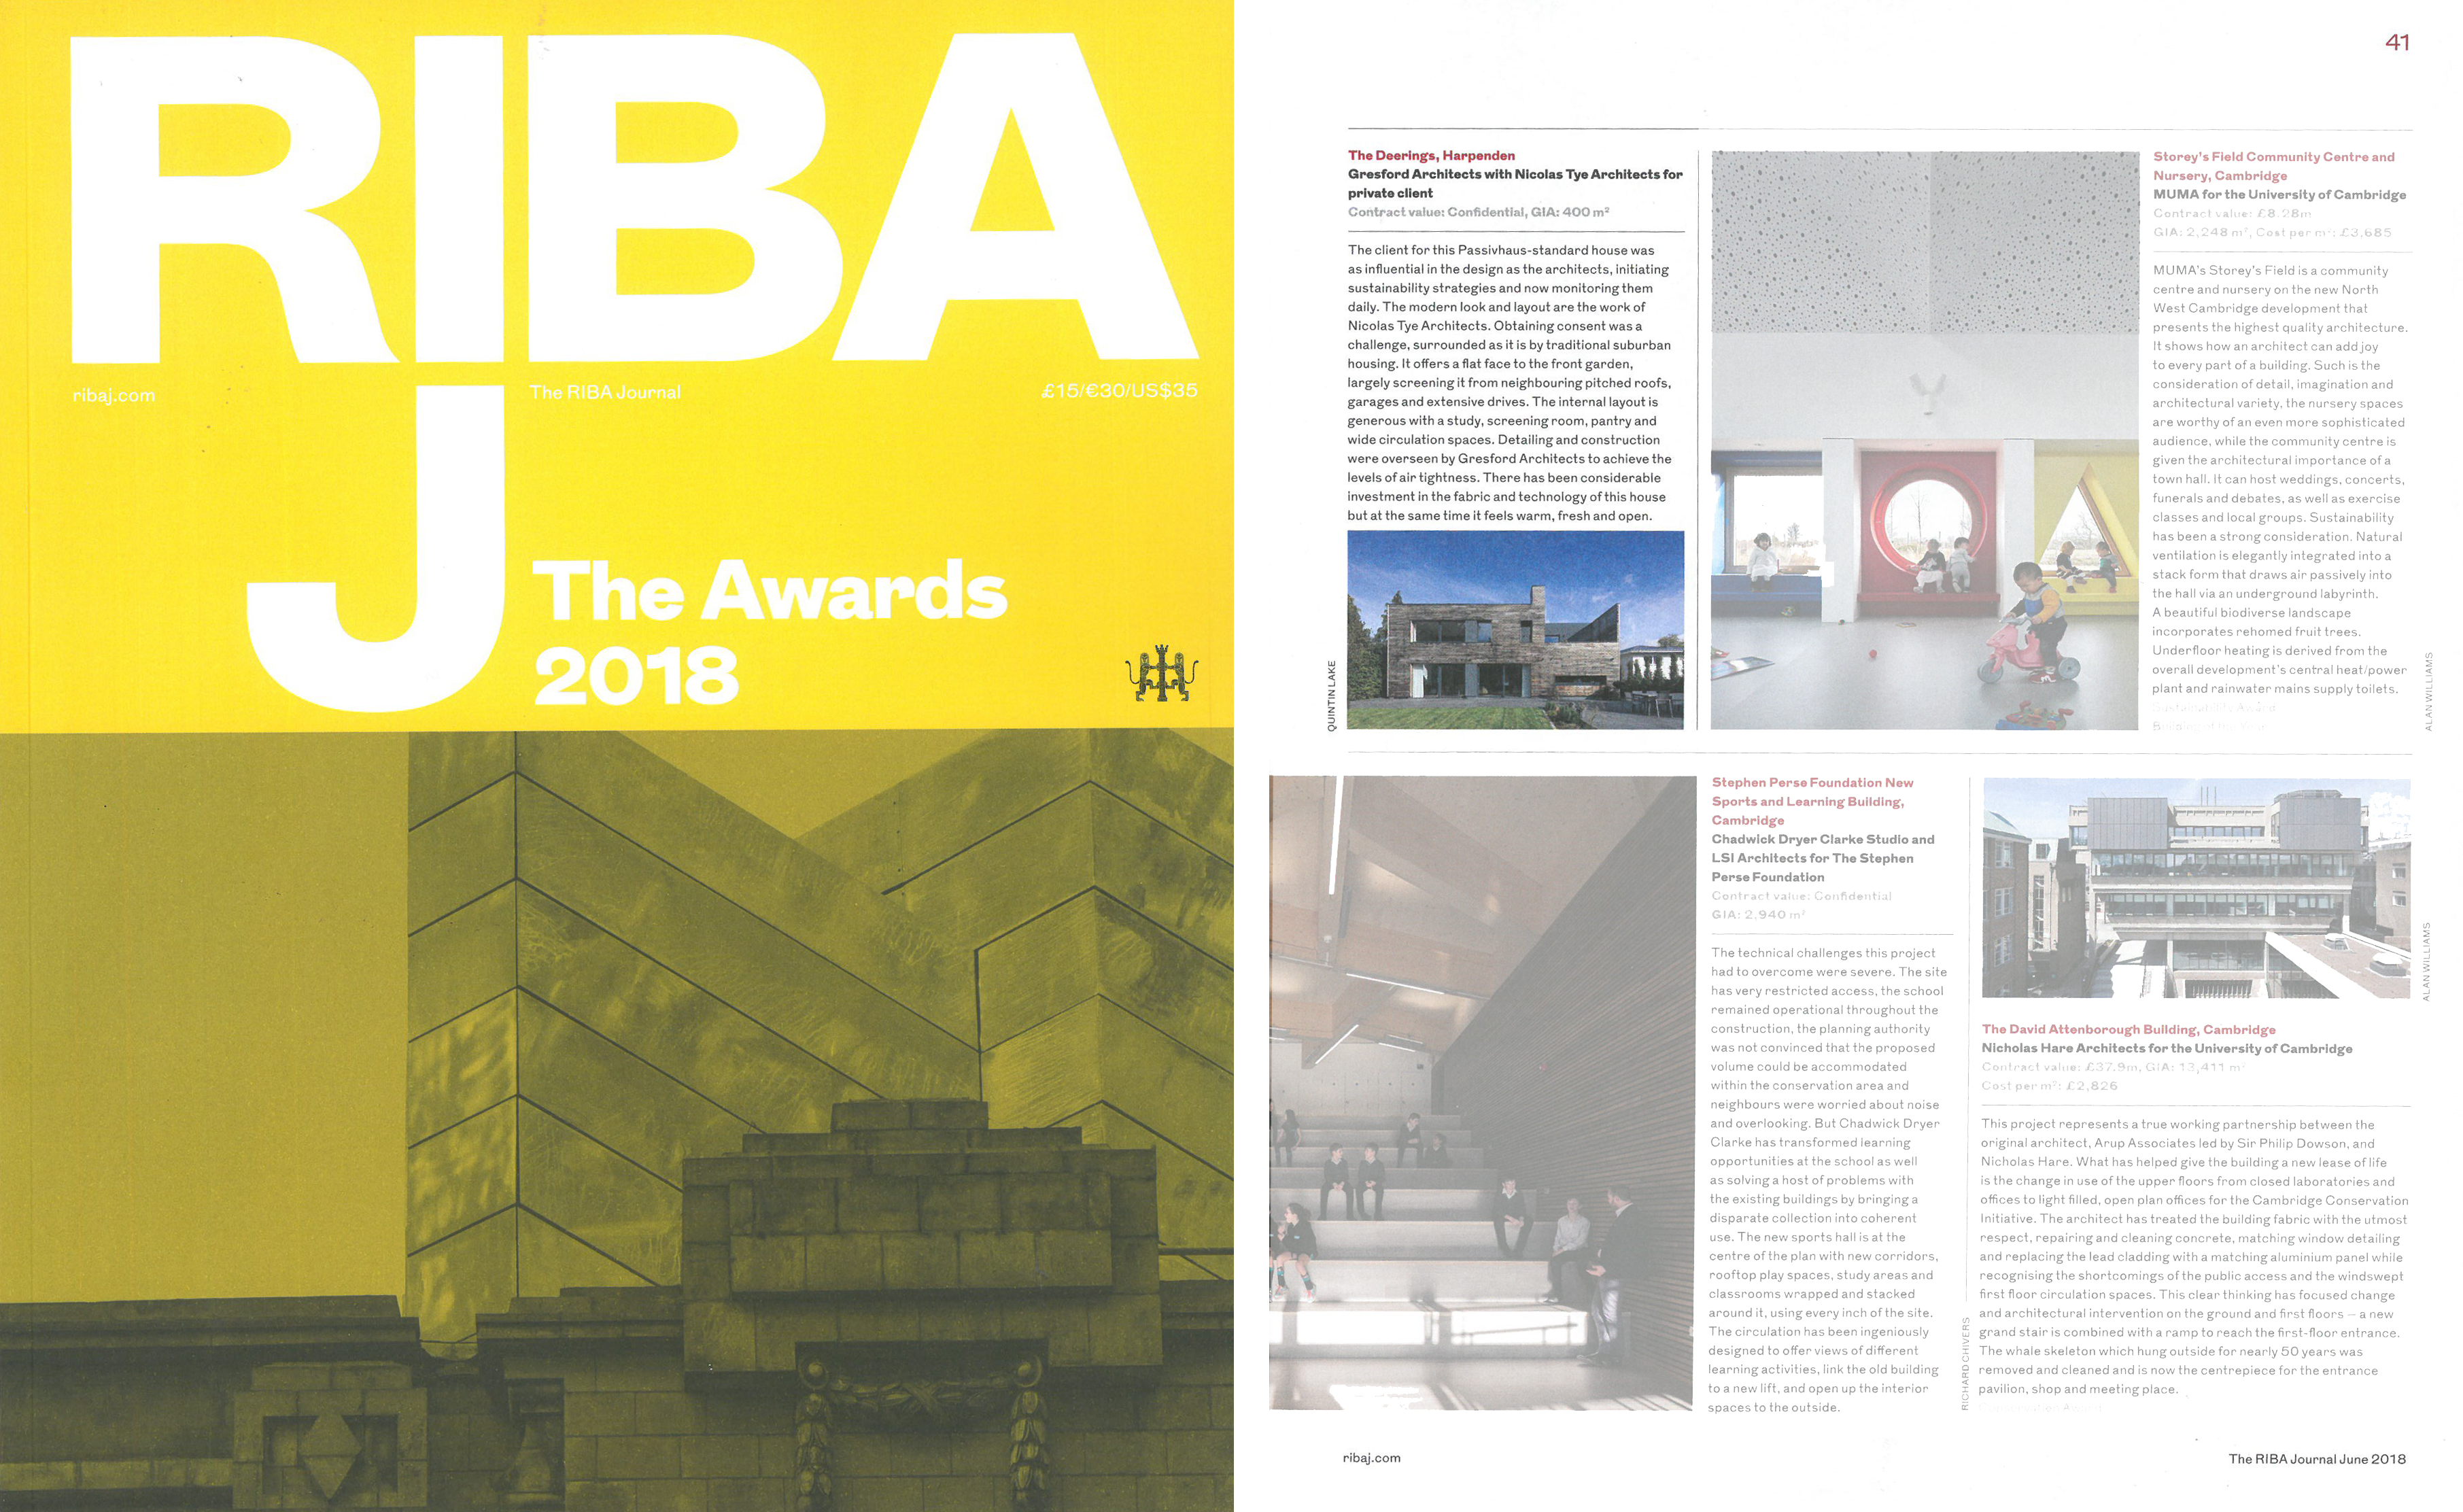 image of winning project listing in RIBA Architectural Awards 2018